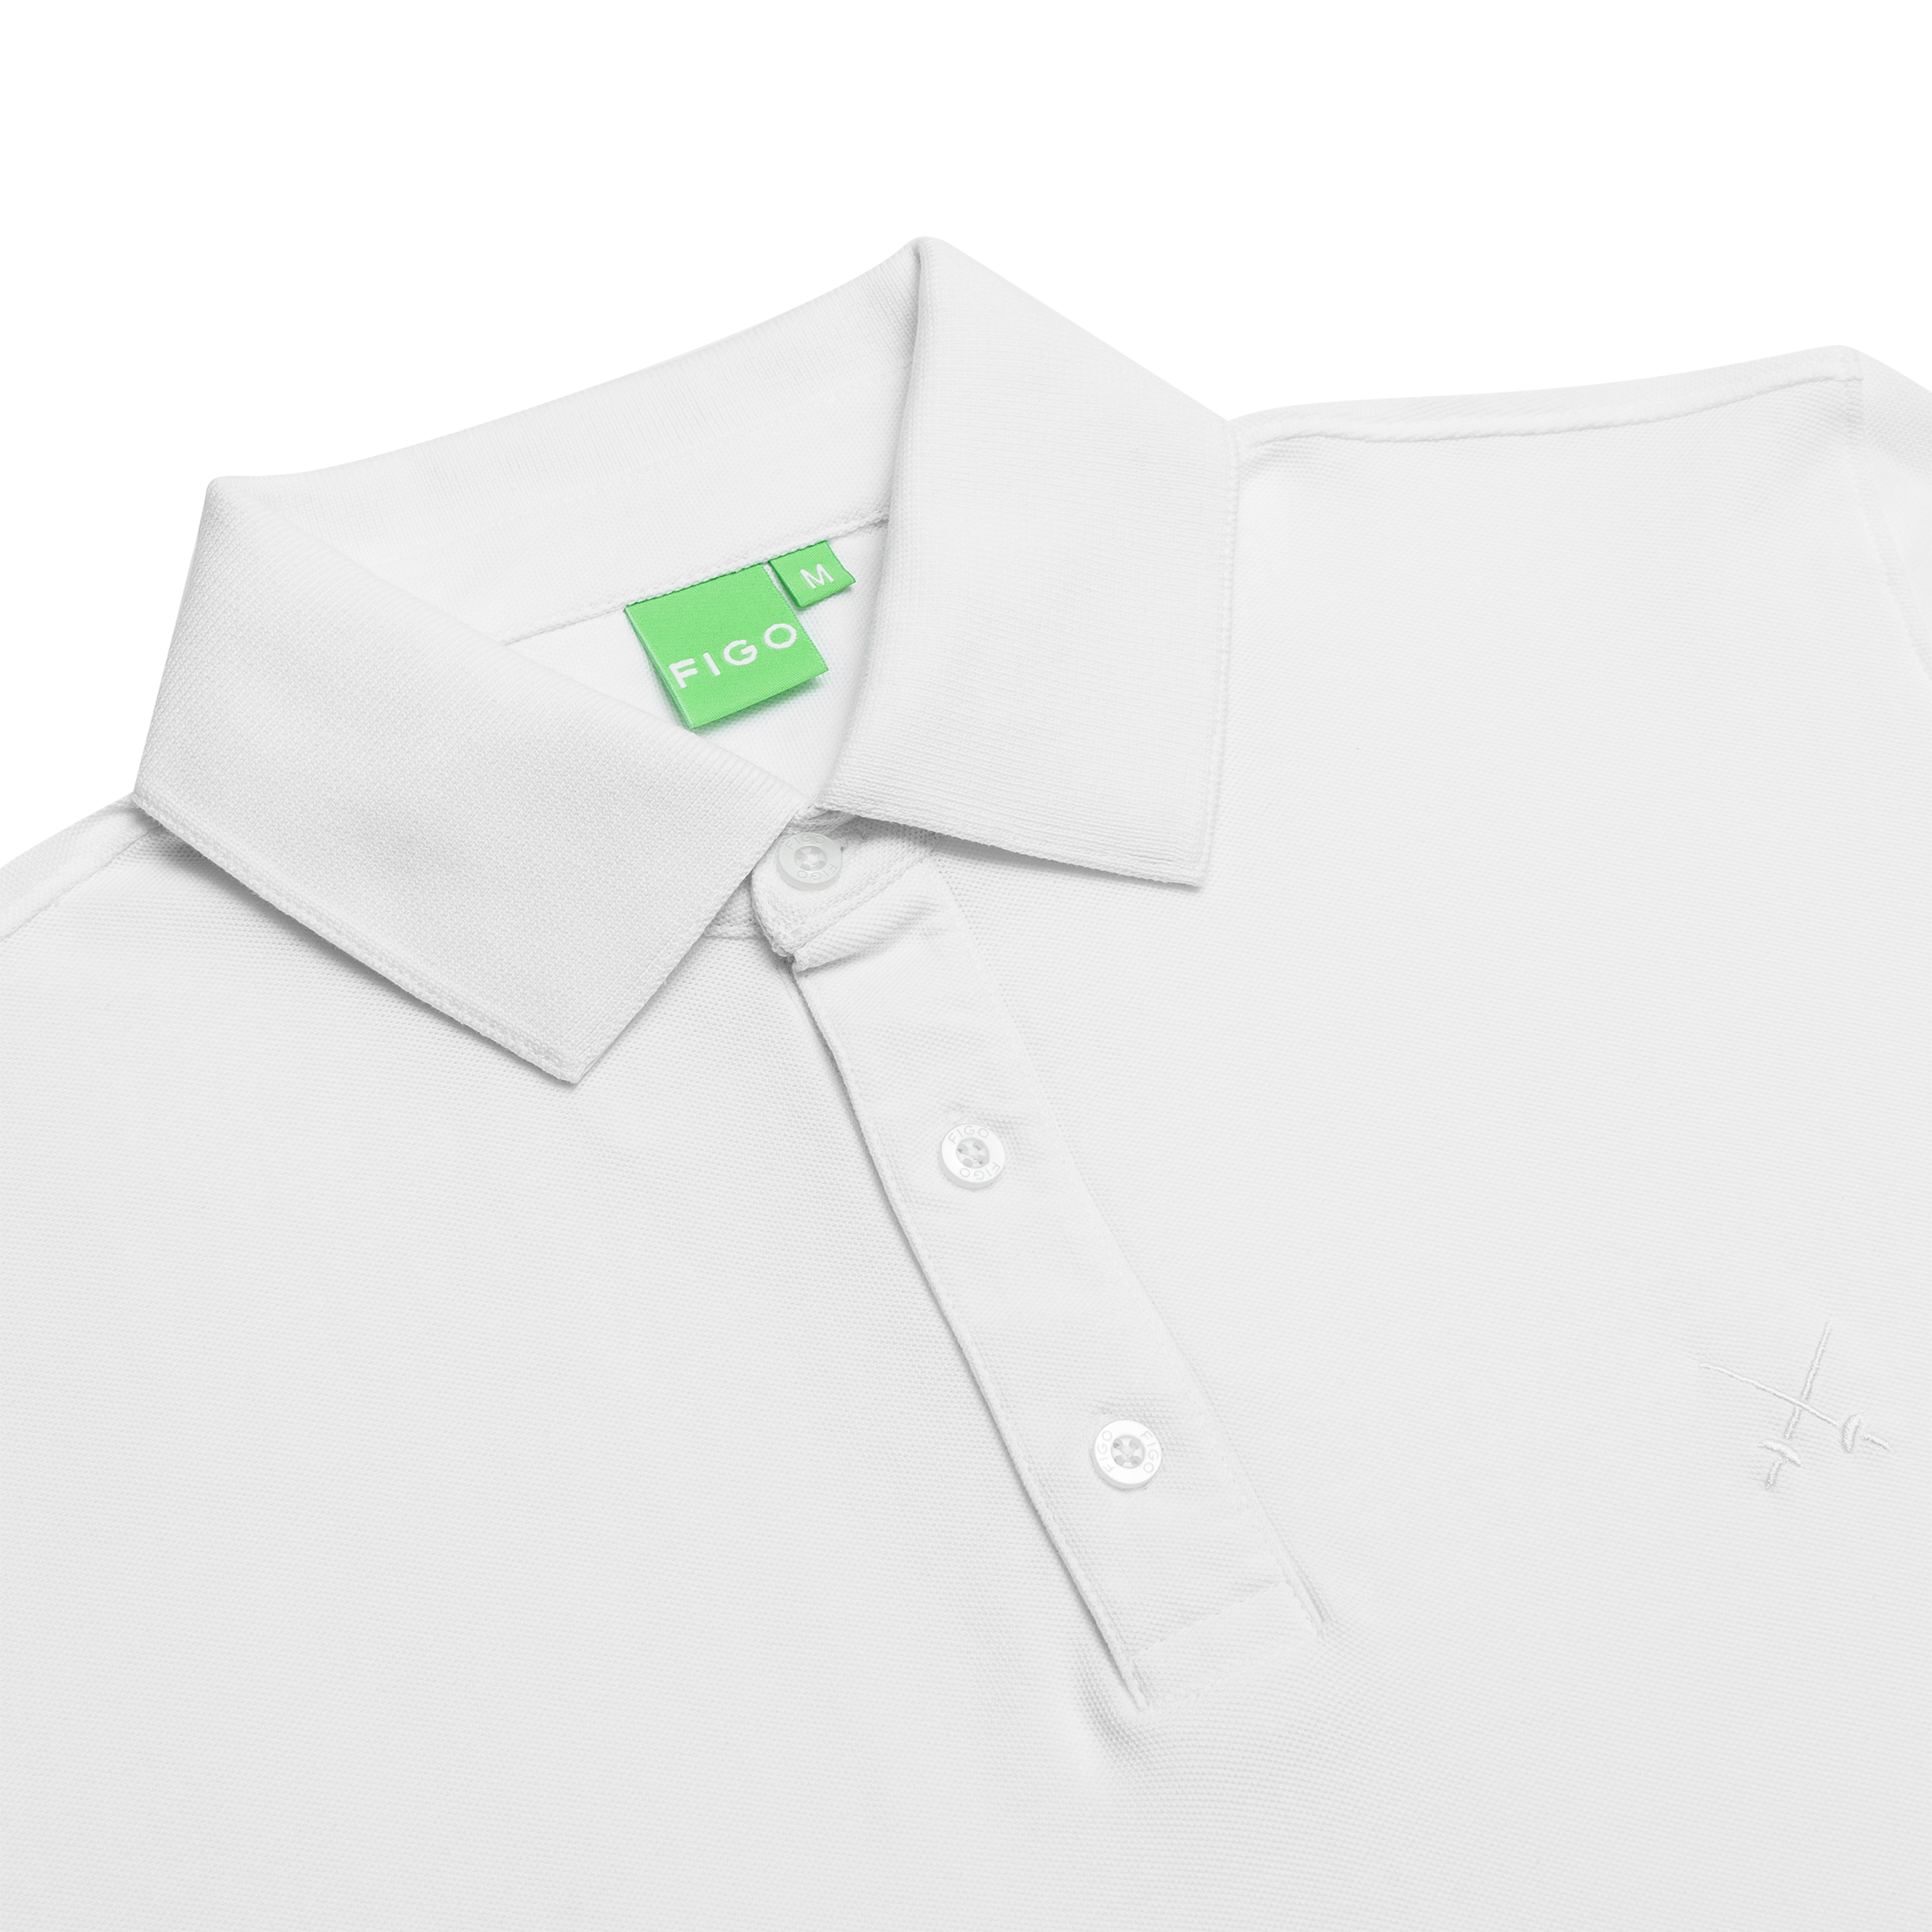 white shirt product photo